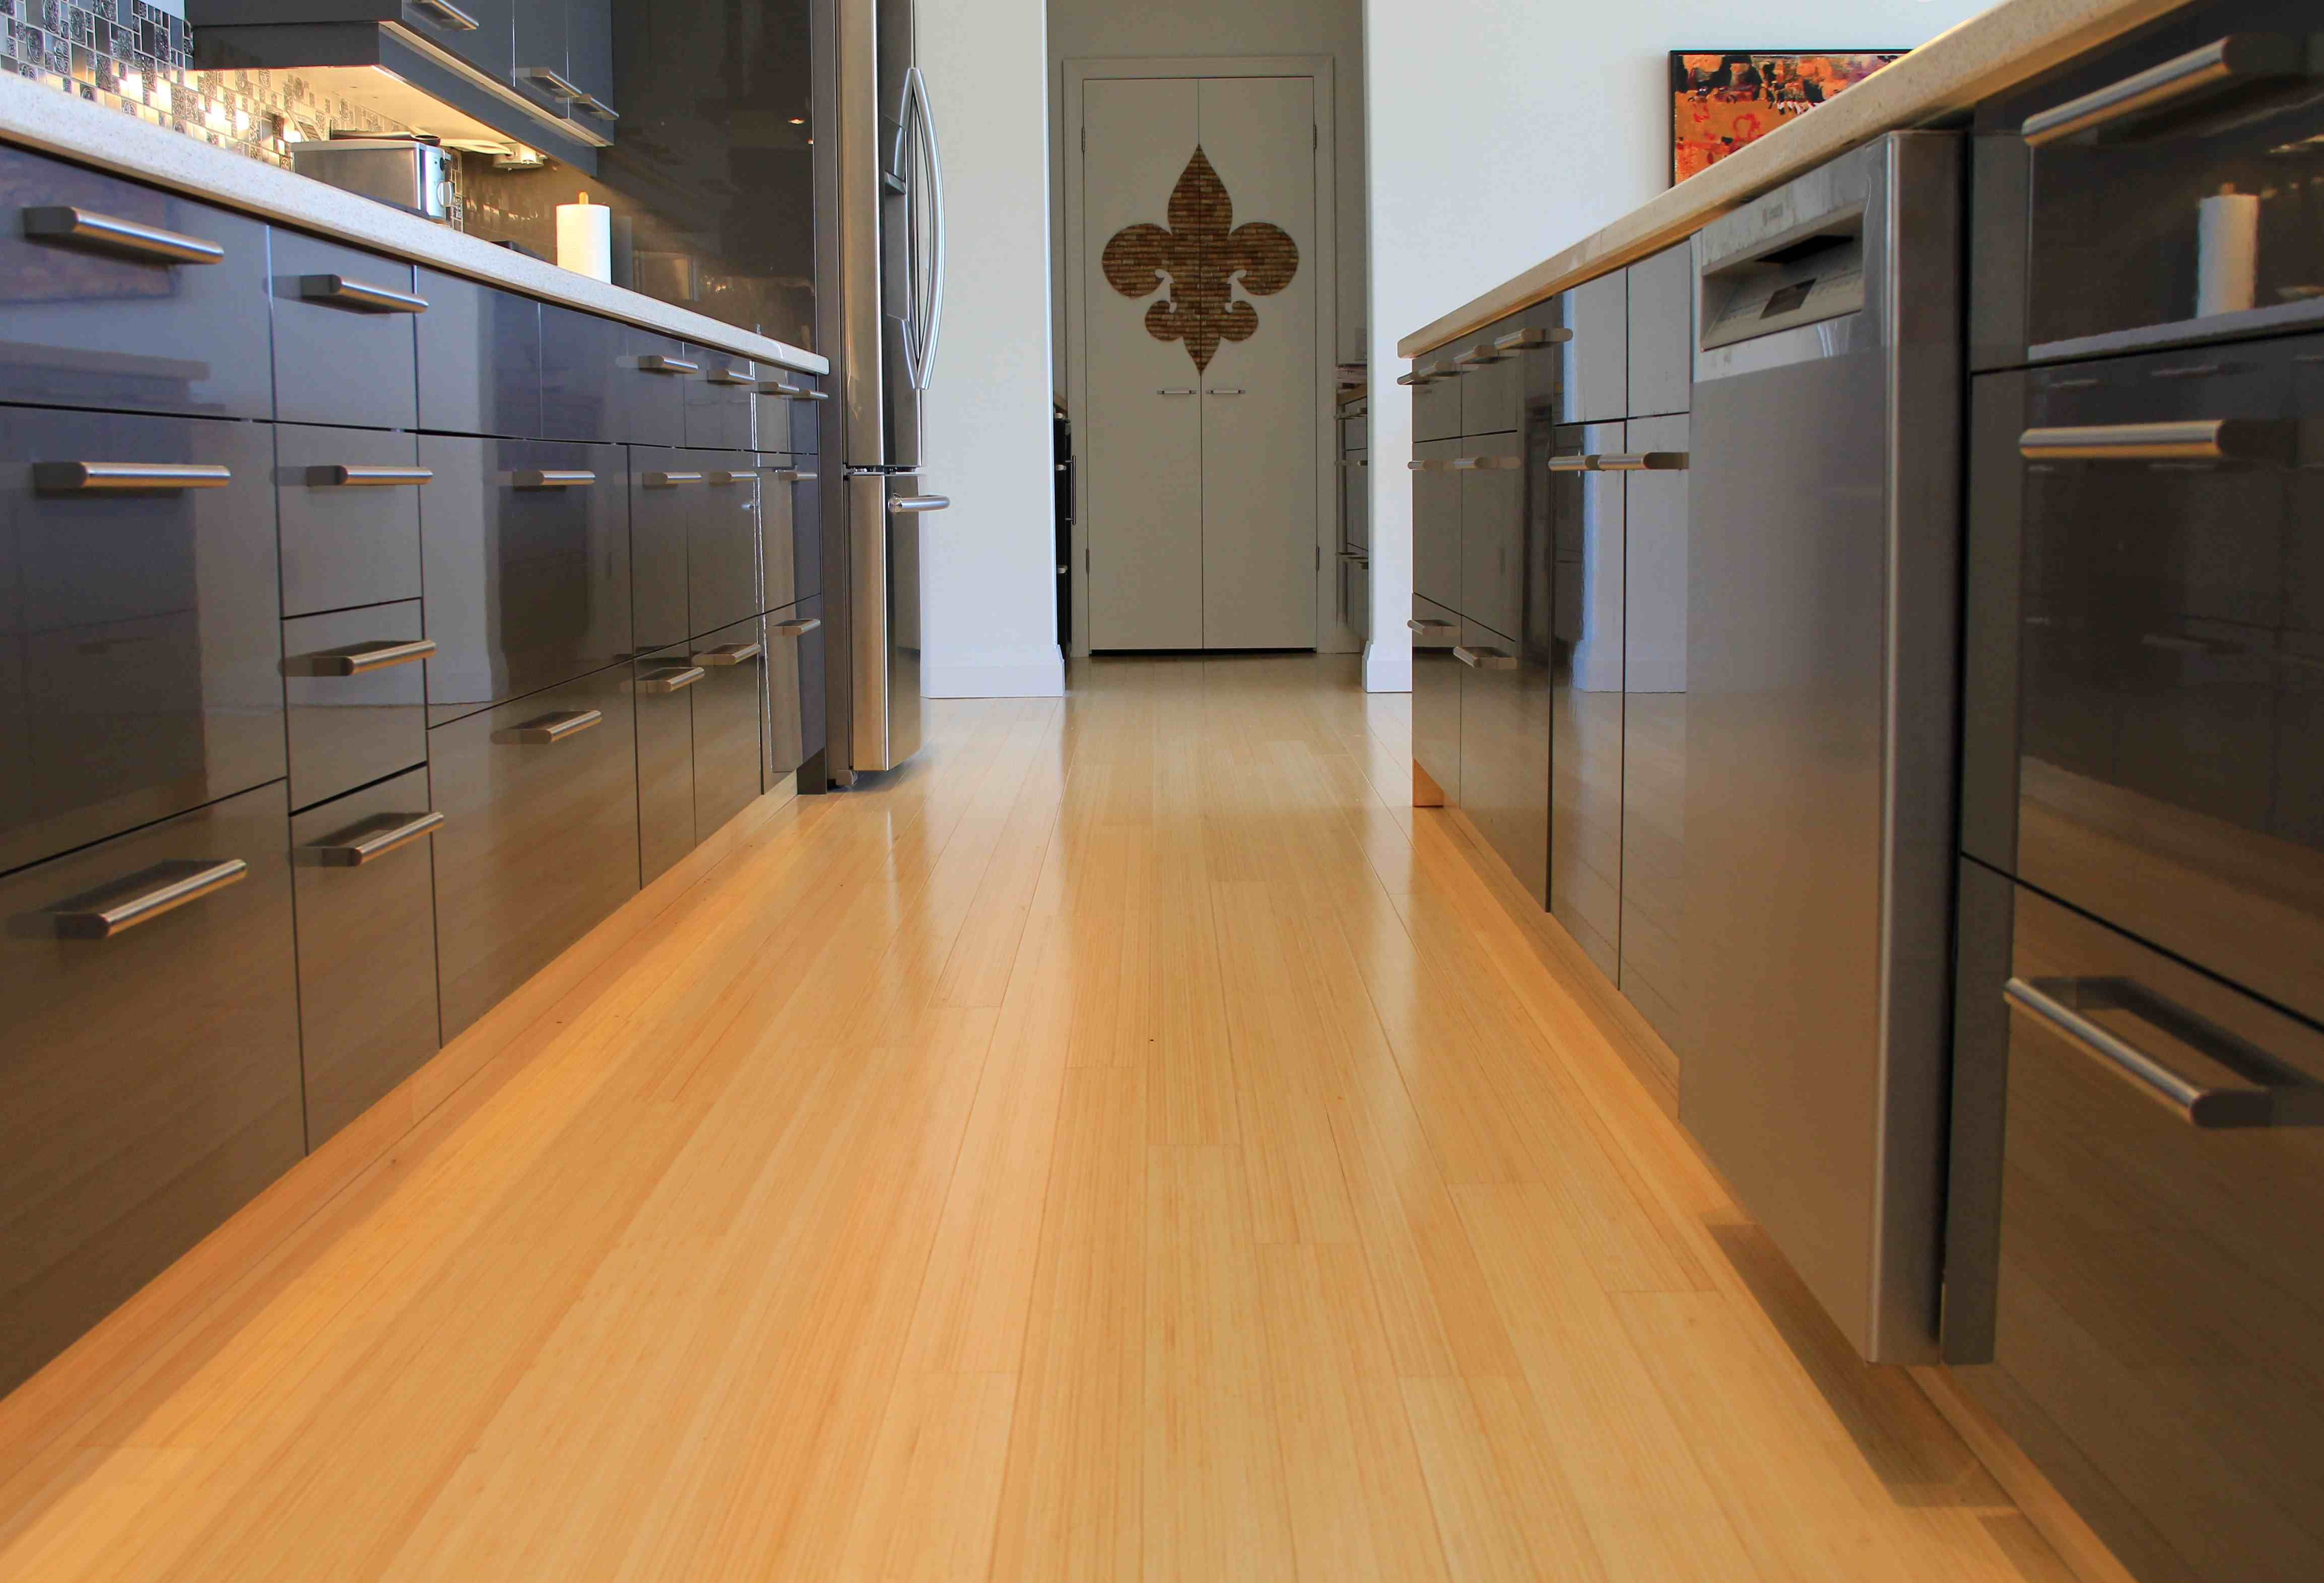 Marmoleum Modular Striato Can Product A Similar Look To Bamboo Flooring Using The Plank Format In